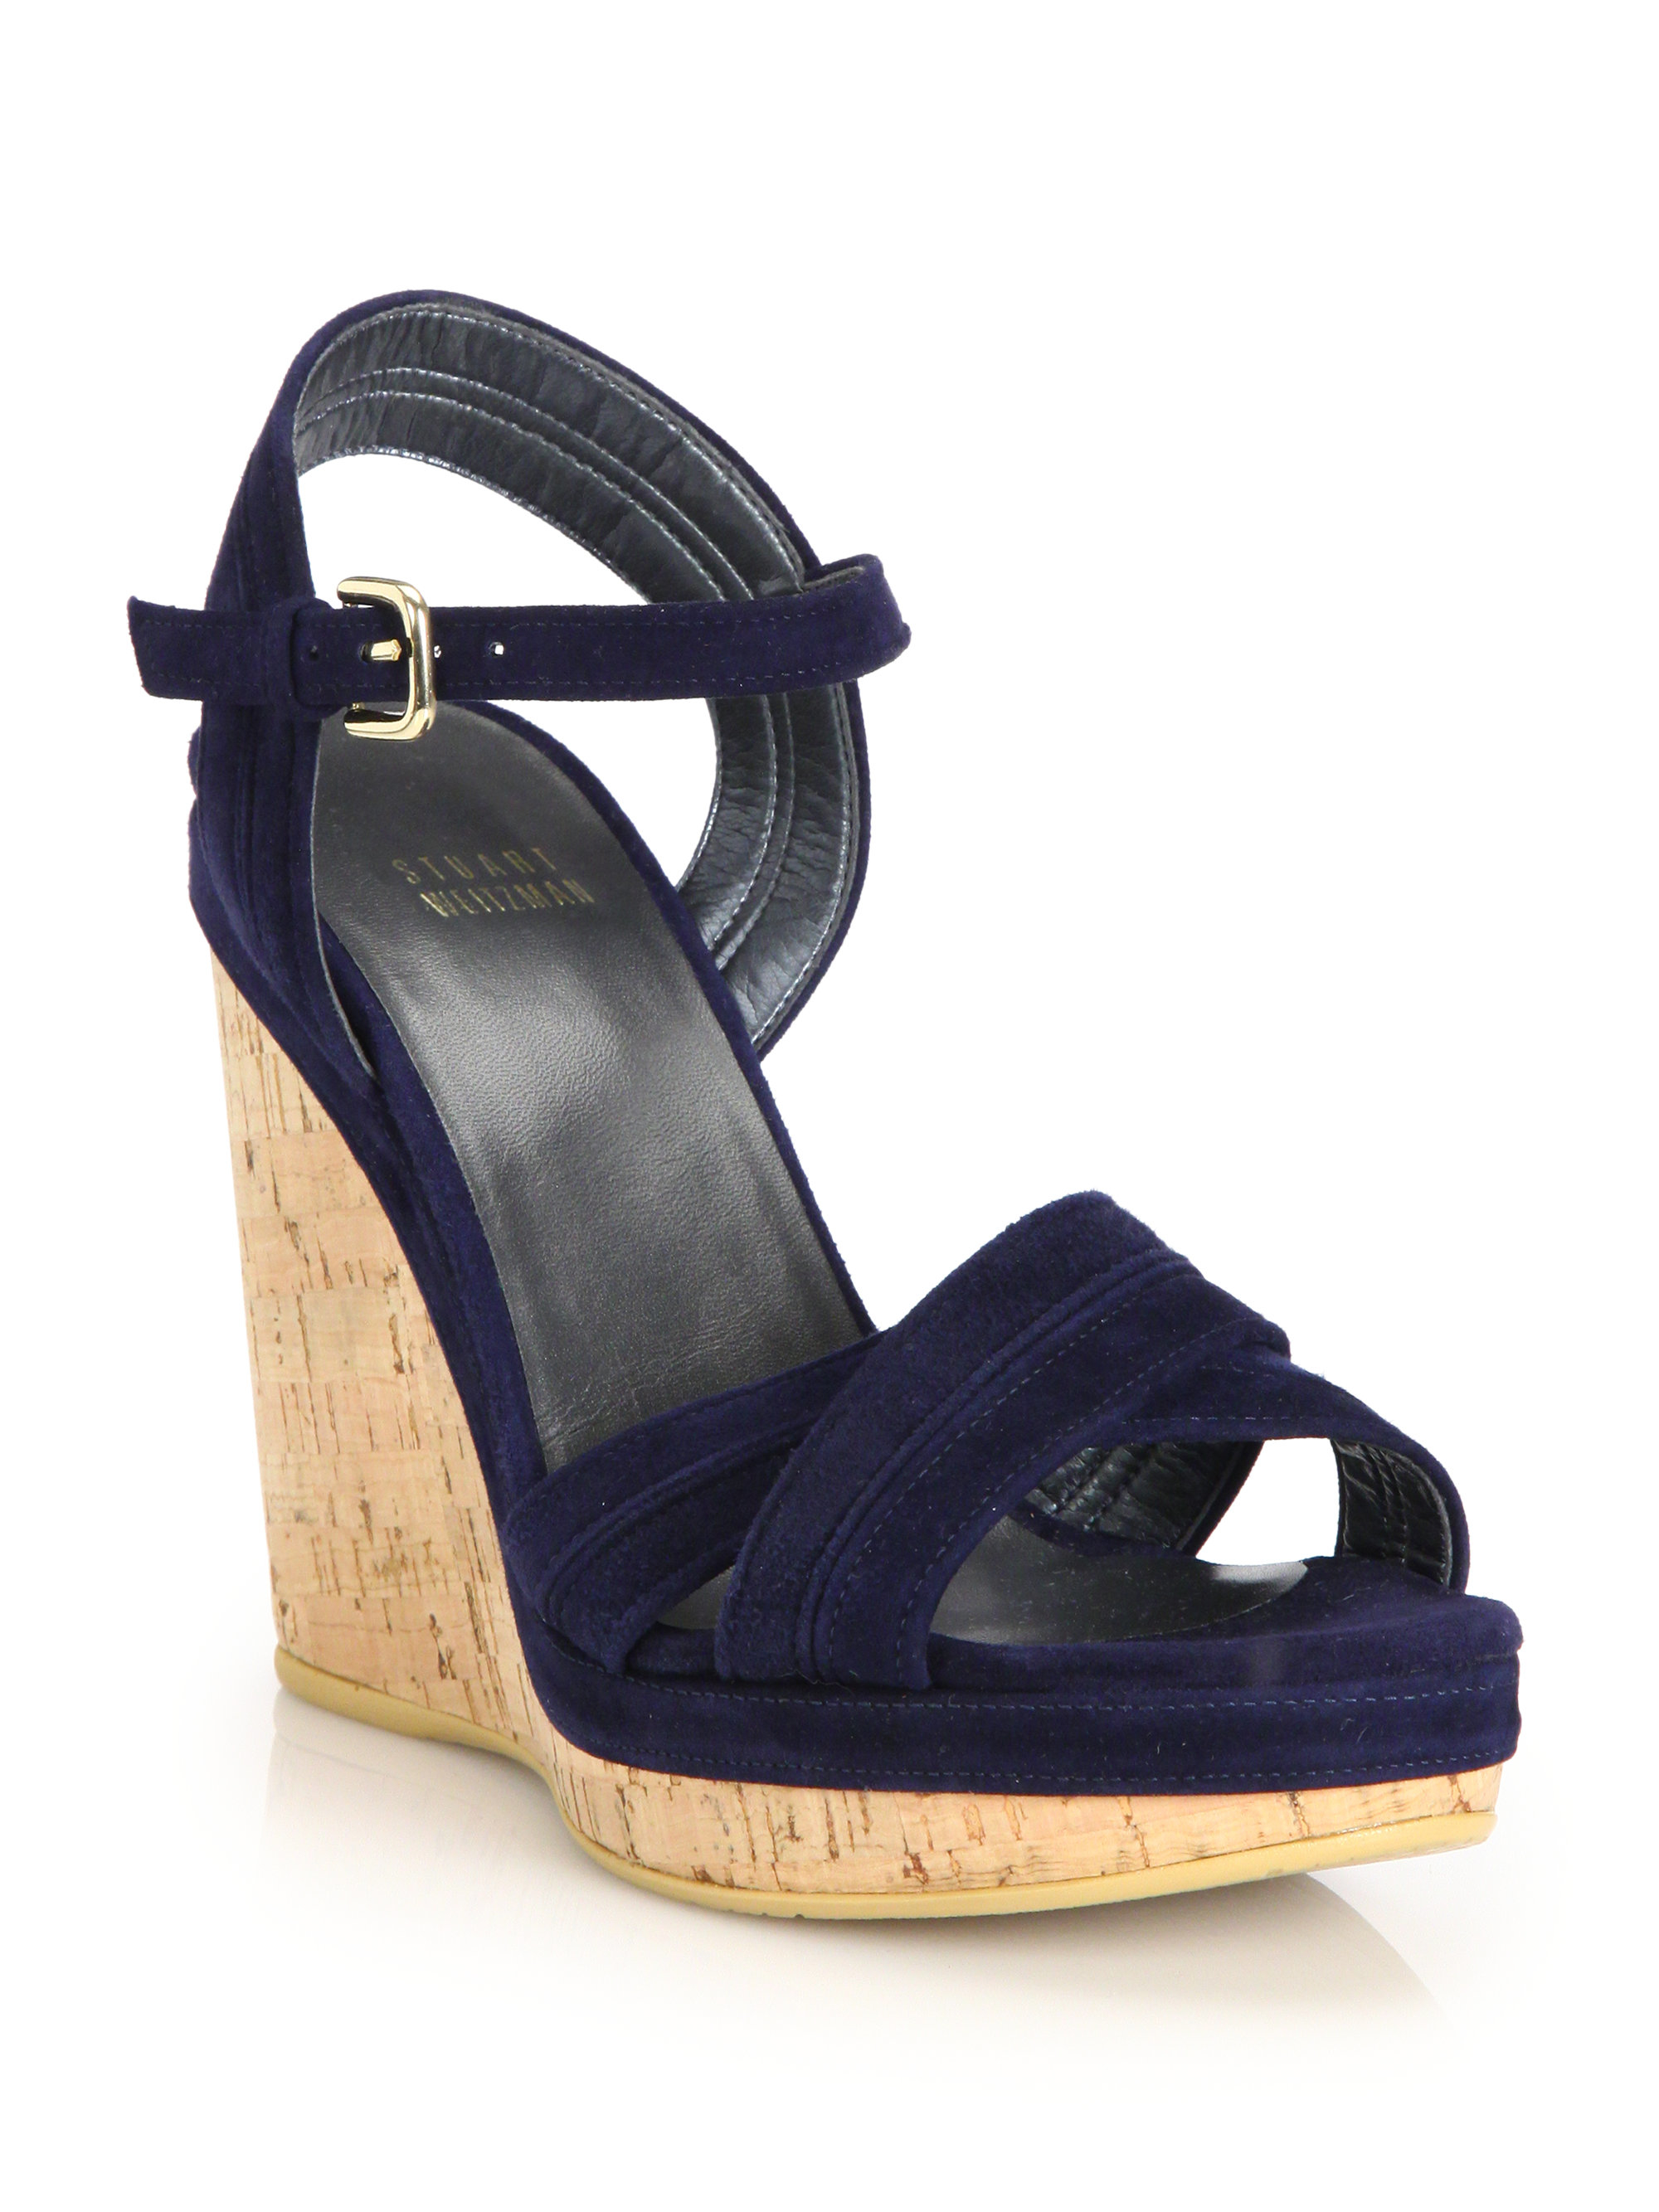 Stuart Weitzman Suede Caged Platform Sandals pay with visa free shipping deals high quality buy online 2014 unisex cheap price YKt8xa2W2G